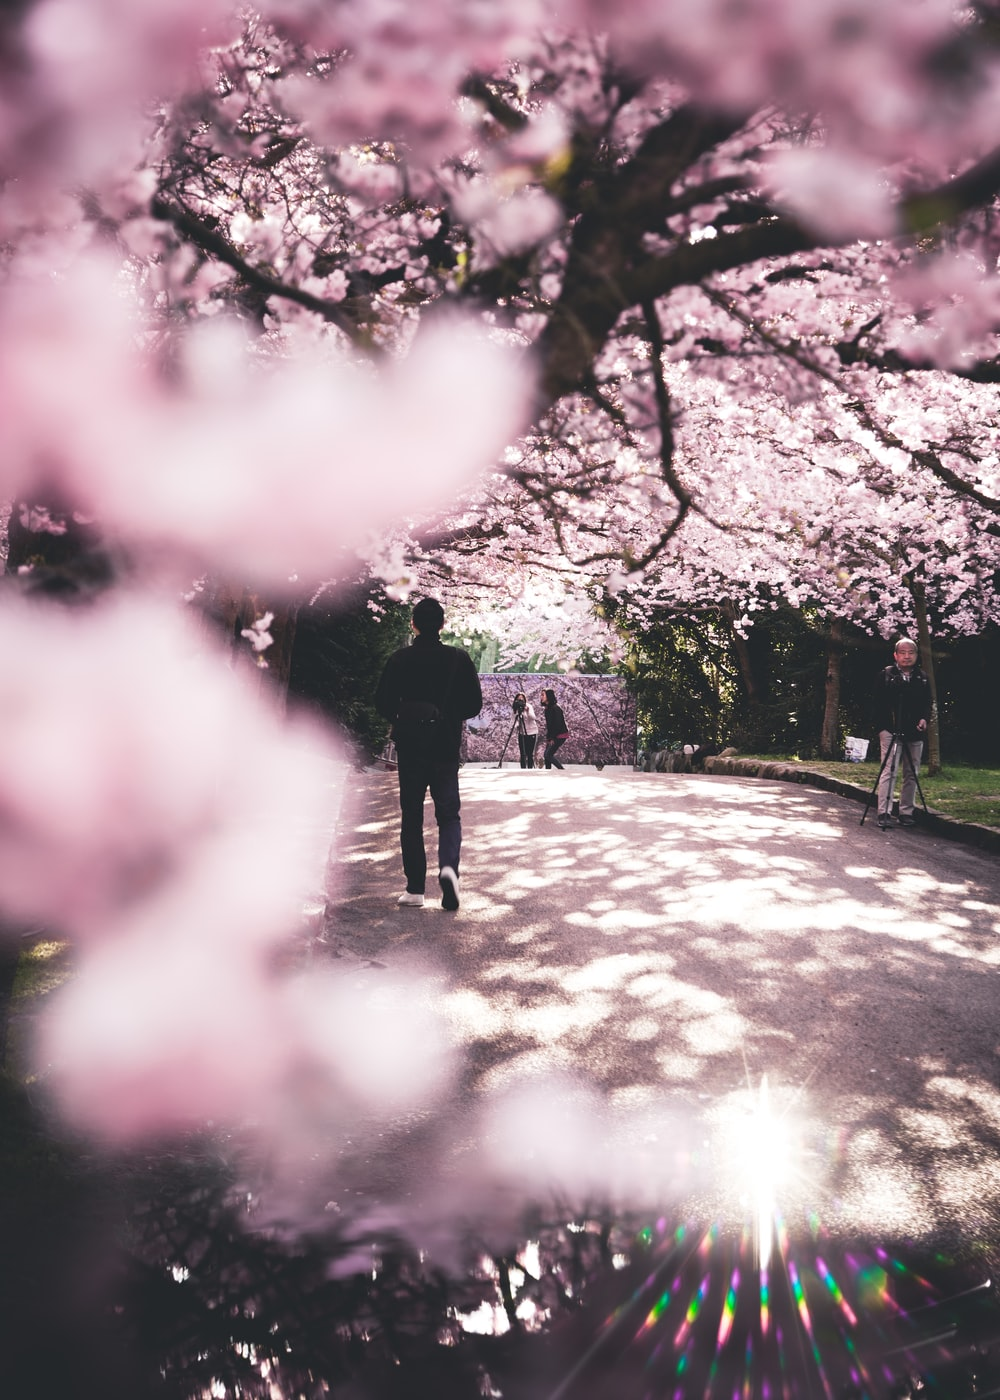 man walking on road surrounded by cherry trees